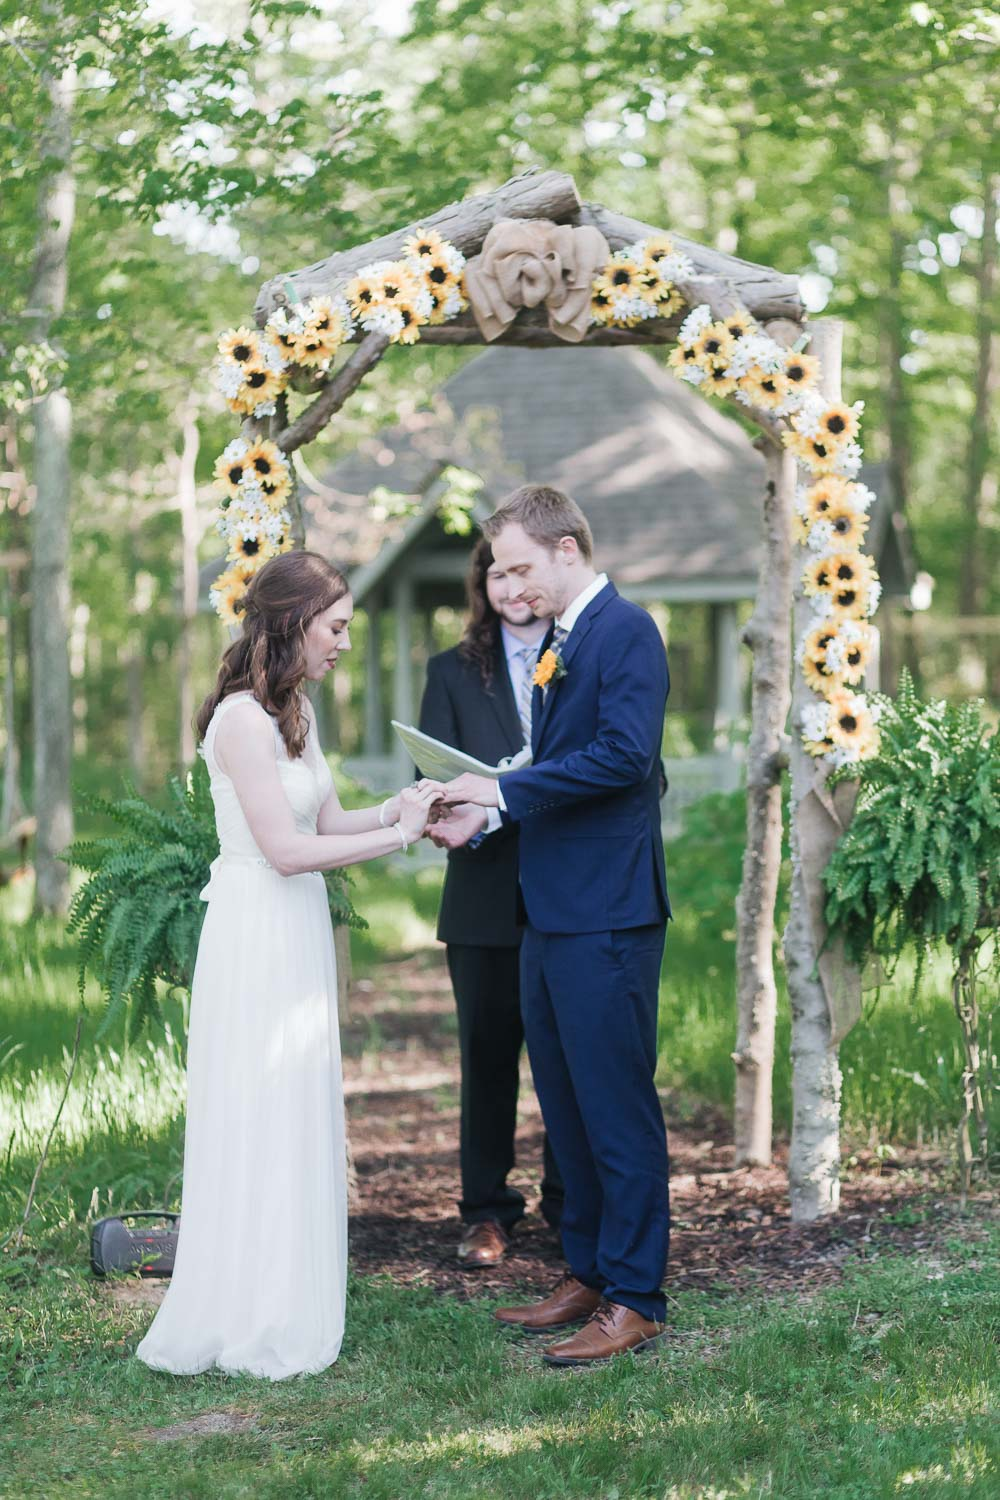 Dallas Texas wedding photography, including a wedding photography at DeSoto Falls and The Mentone Inn, by David A. Smith of DSmithImages Wedding Photography, Portraits, and Events, a wedding photographer in Birmingham, Alabama.